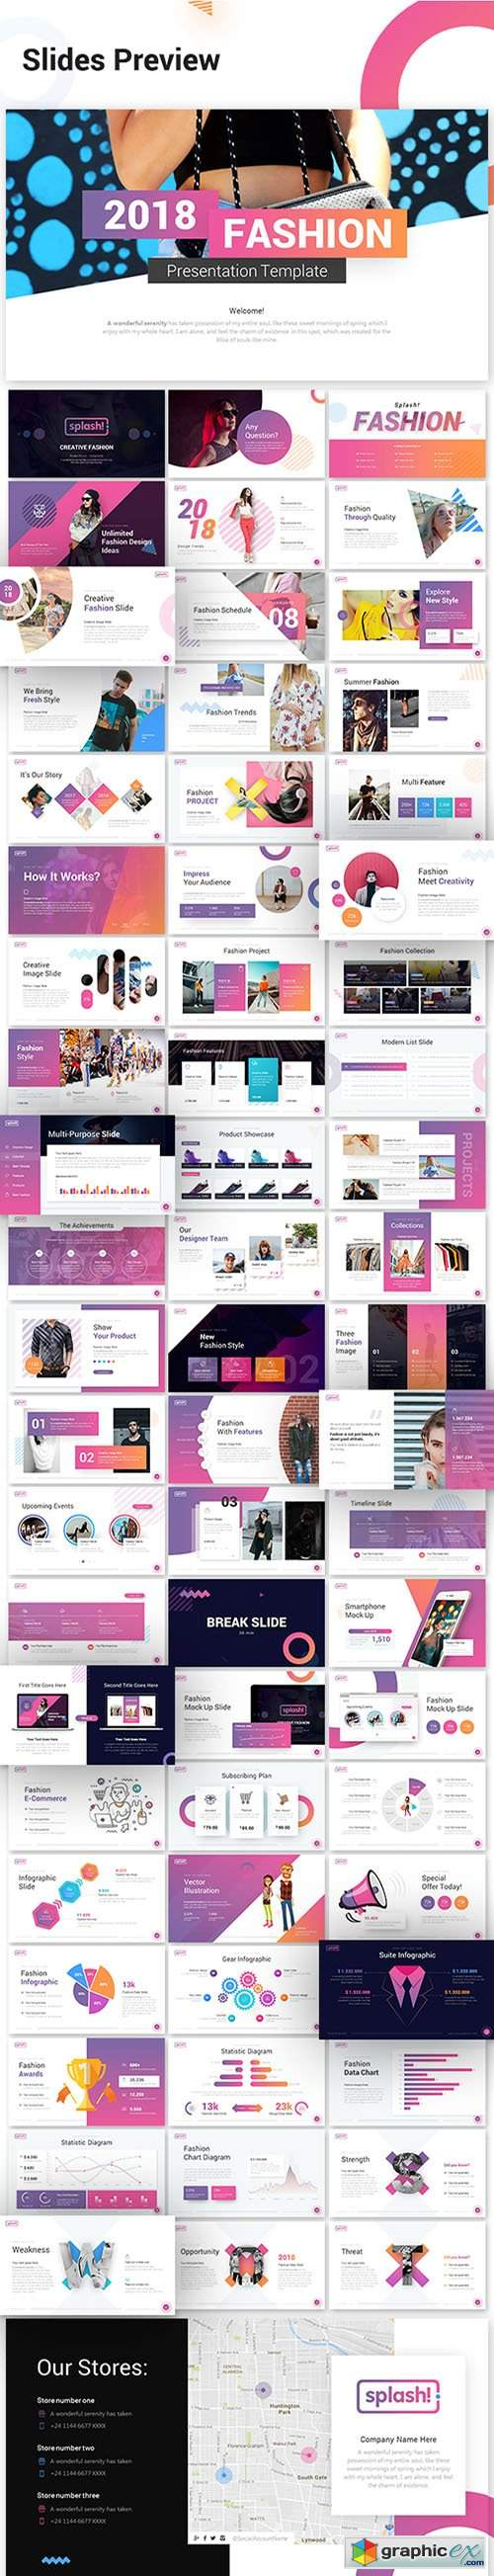 Splash Fashion PowerPoint Presentation Template